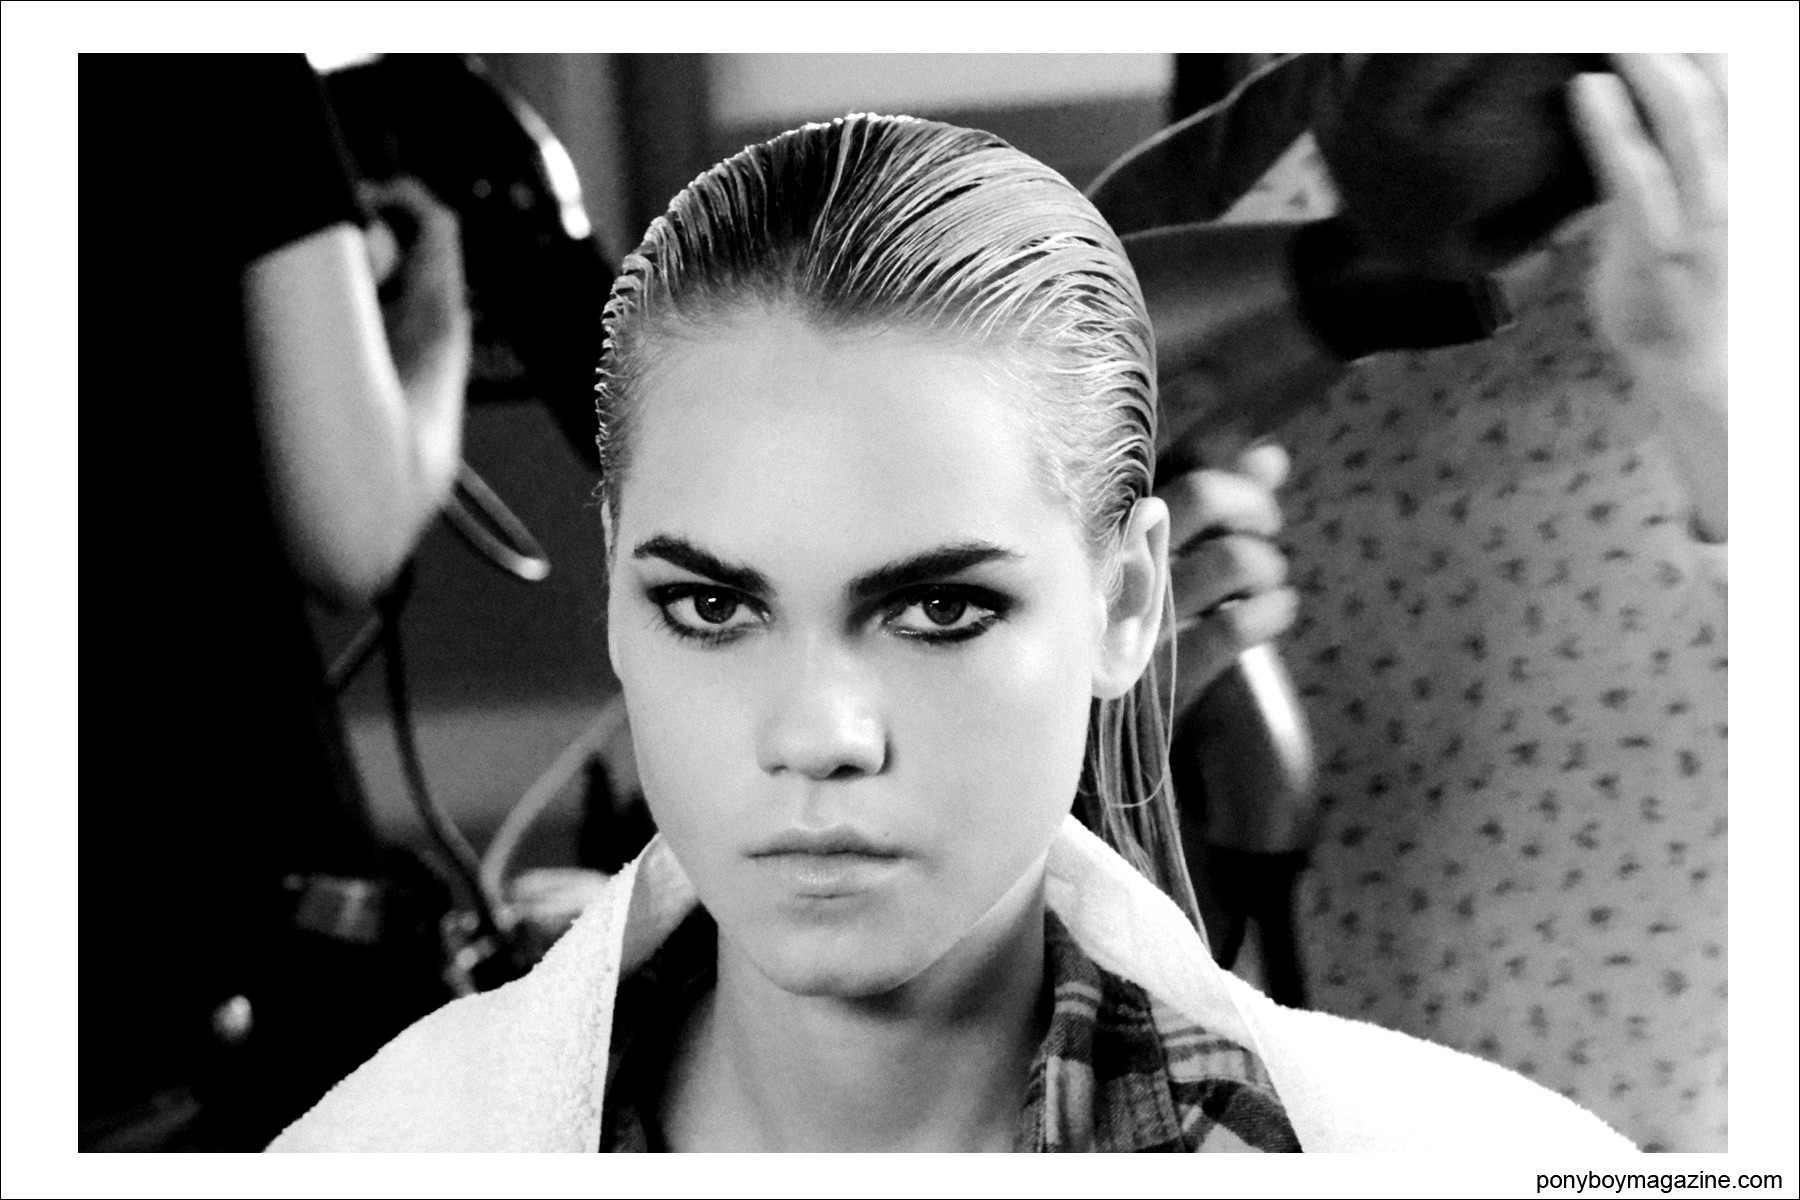 A model snapped backstage at hair for Sophie Theallet S/S15. Photo by Alexander Thompson for Ponyboy Magazine.